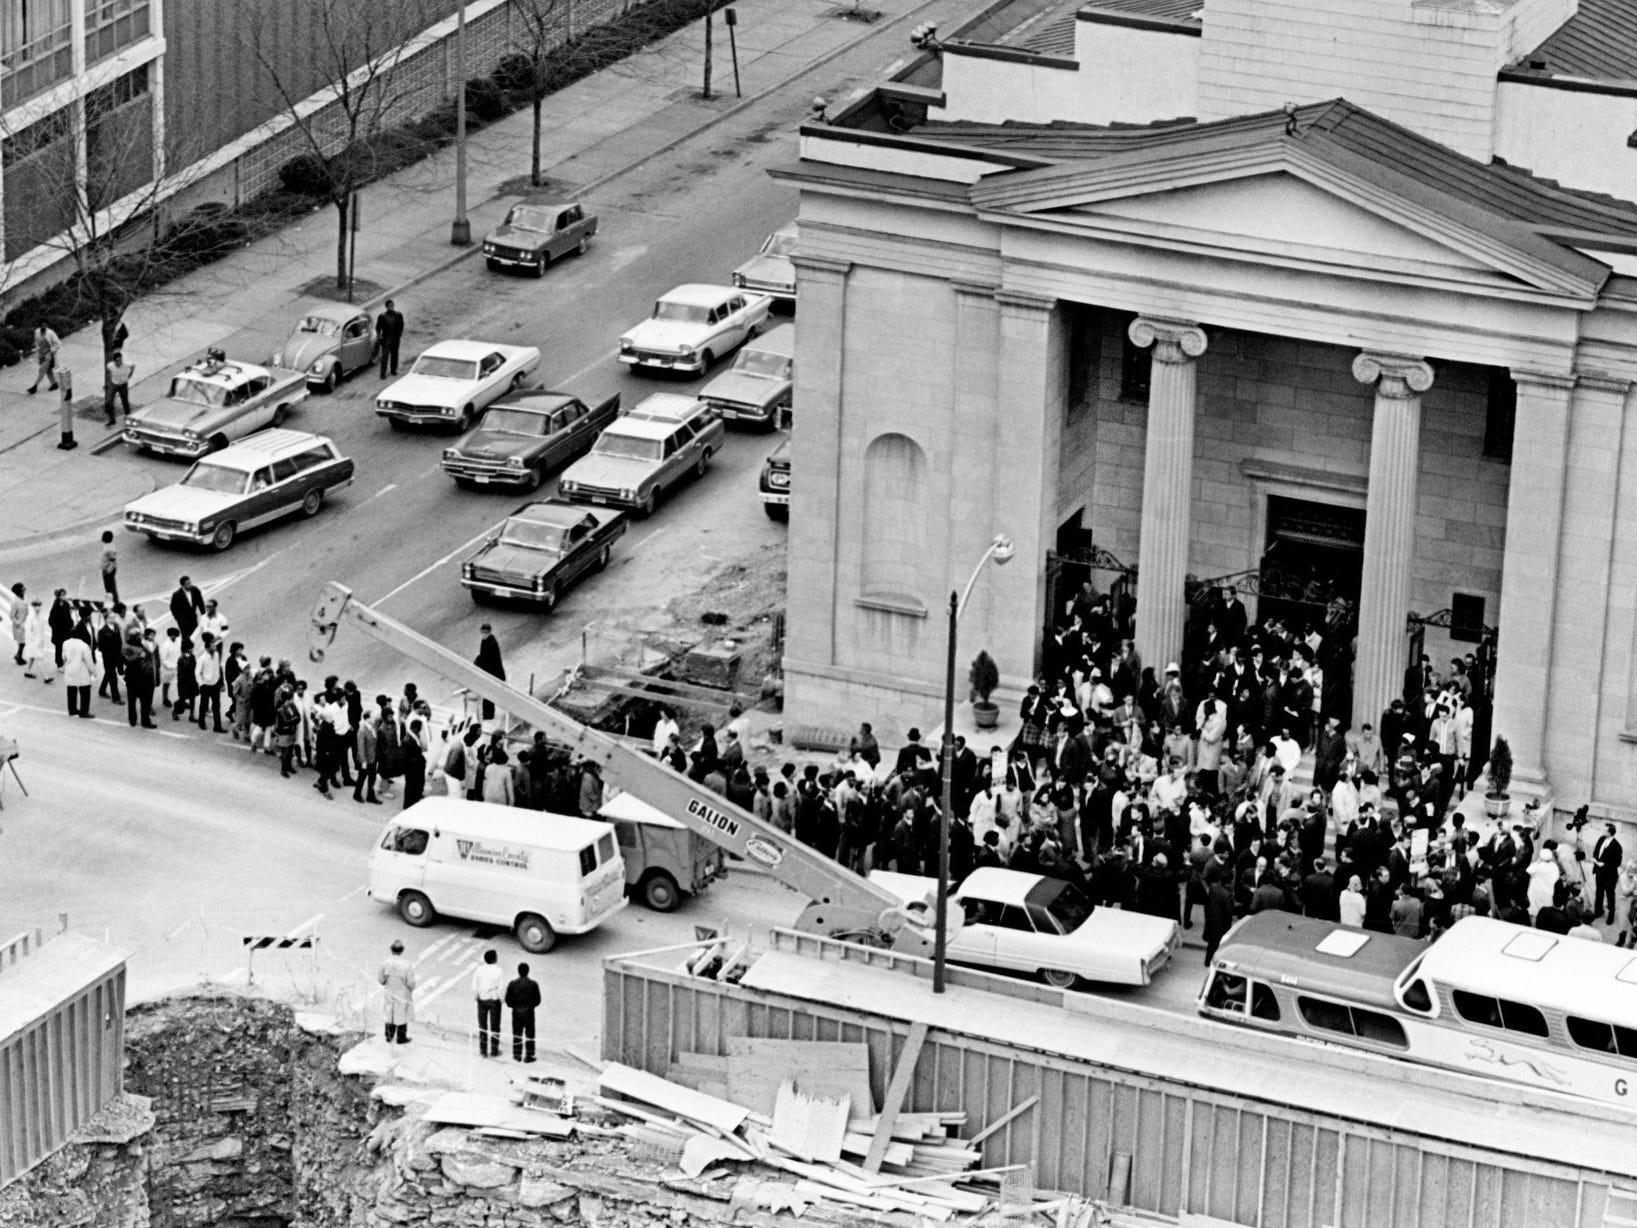 An interfaith service at St. Mary's Catholic Church in downtown Nashville drew hundreds, including Vanderbilt University students, for a memorial service for the Rev. Martin Luther King Jr. on April 5, 1968.